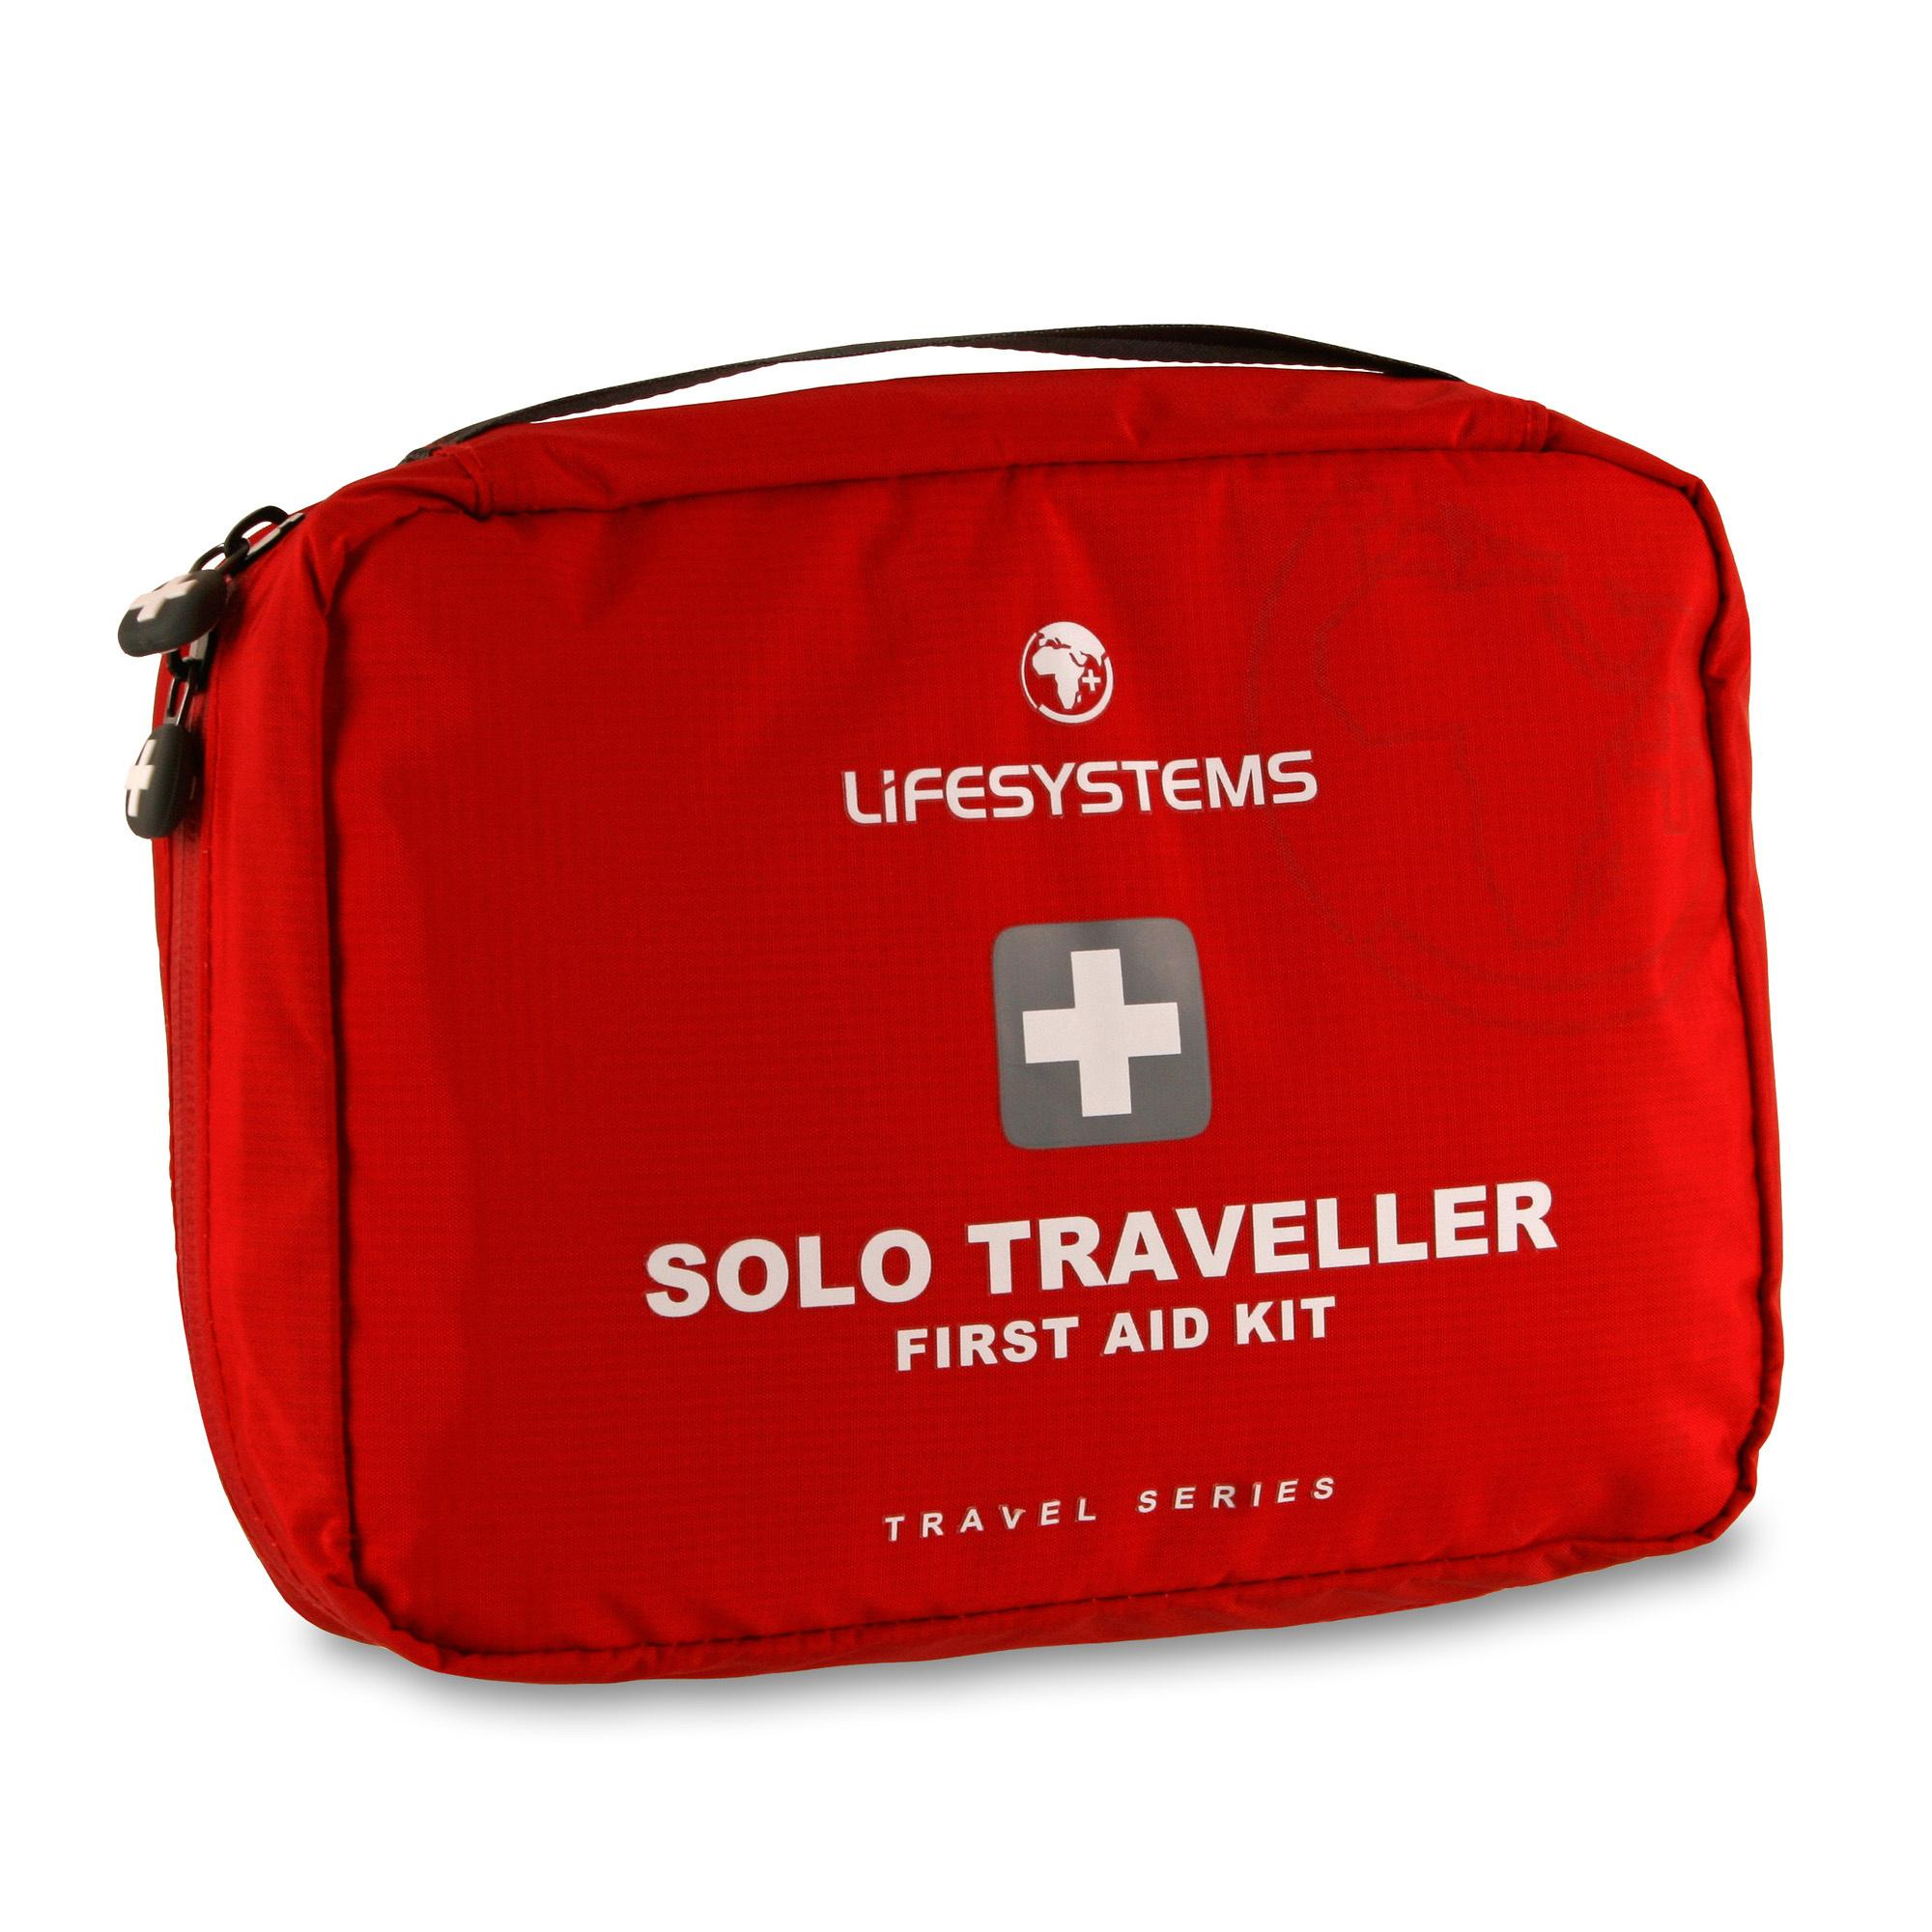 Lifesystems Lifesystems Solo Traveller First Aid Kit - Red, Red